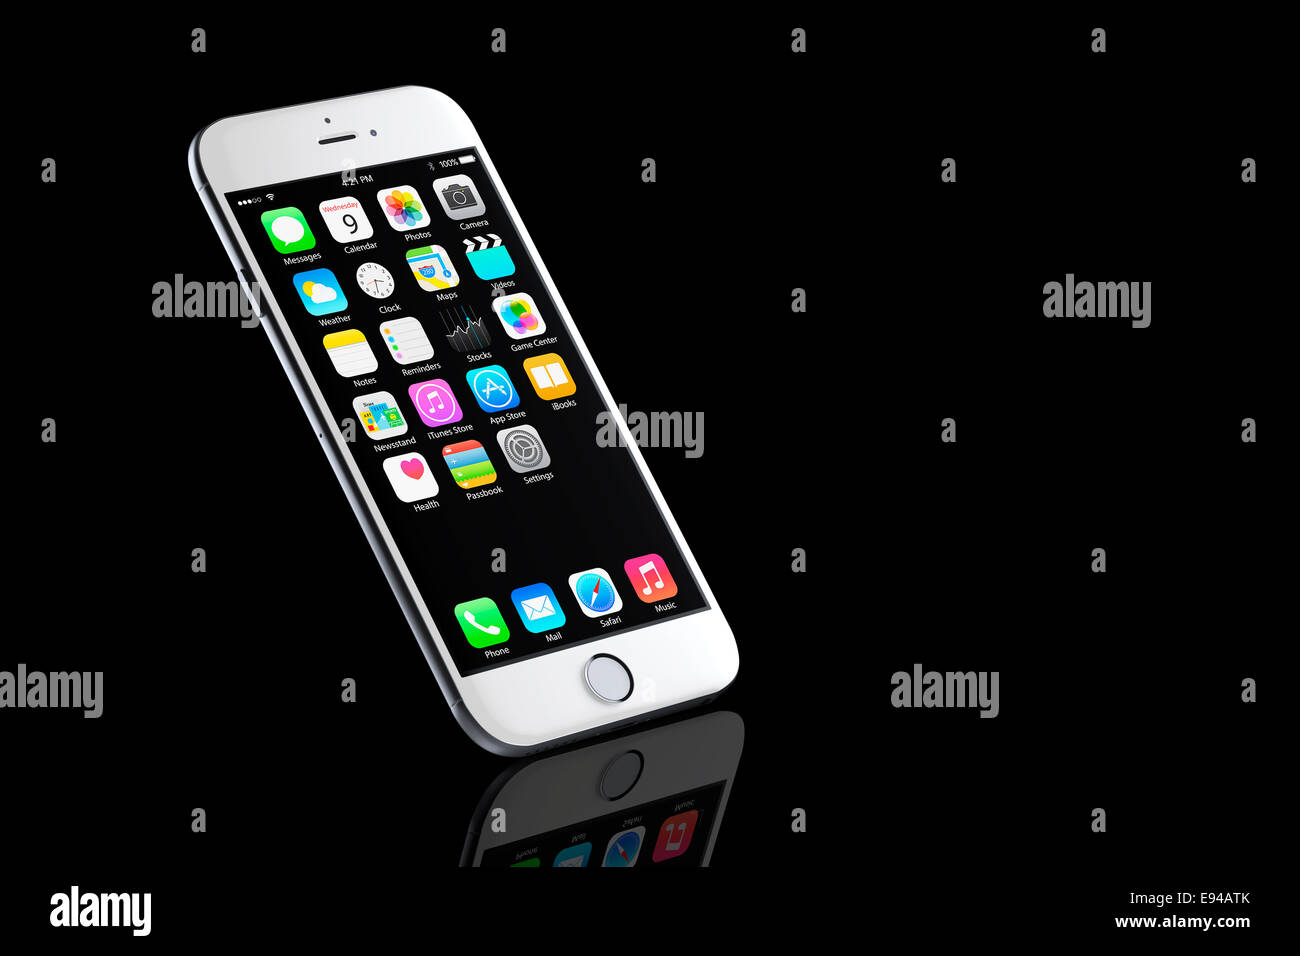 Digitally generated image of cell phone, new iphone 6 silver with apps (ios 8), reflected. - Stock Image